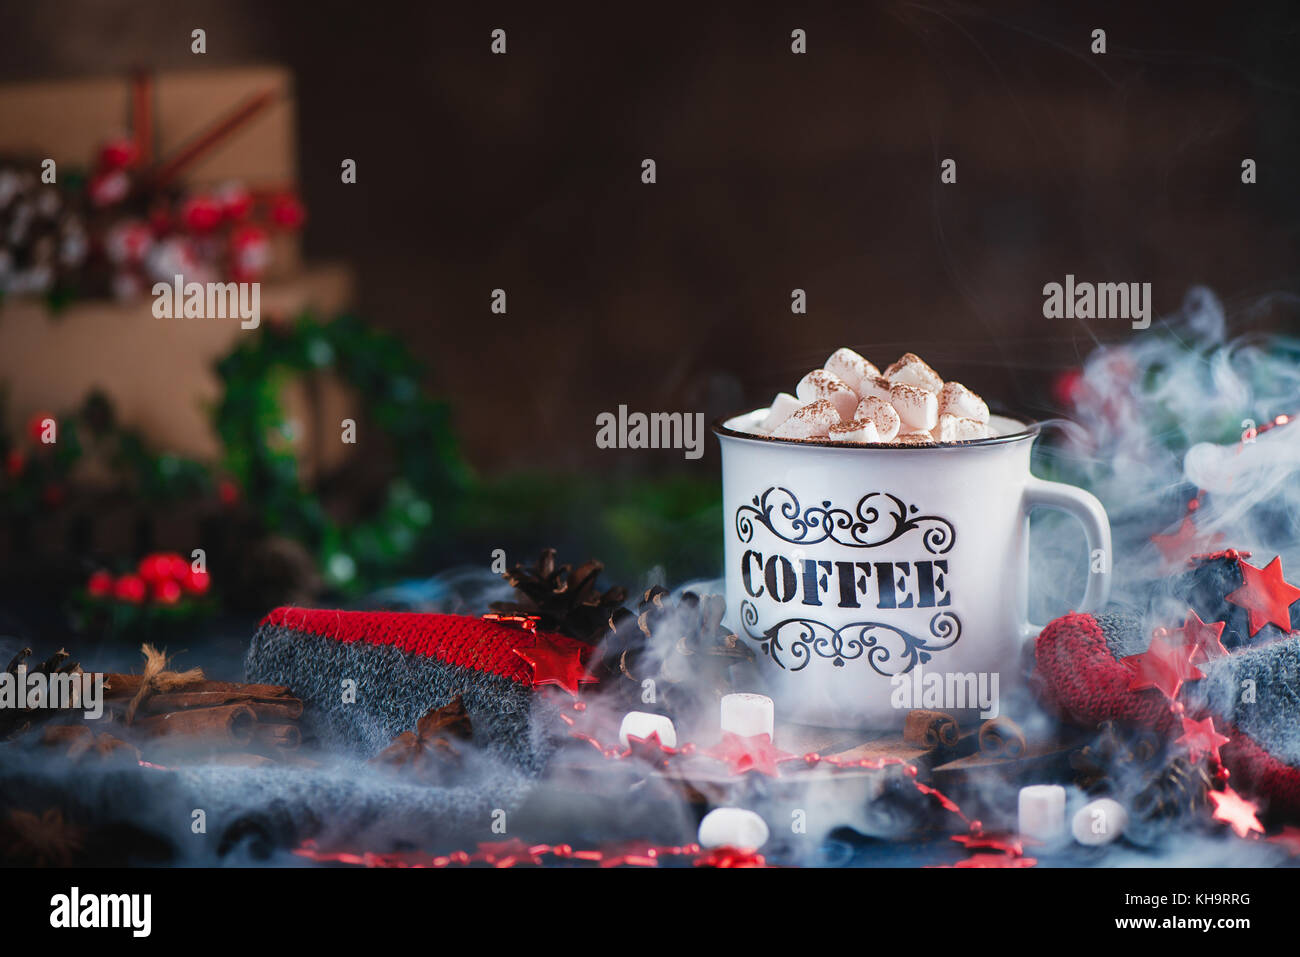 Hot chocolate with marshmallows in a cozy enamel mug with steam and Christmas decorations - Stock Image